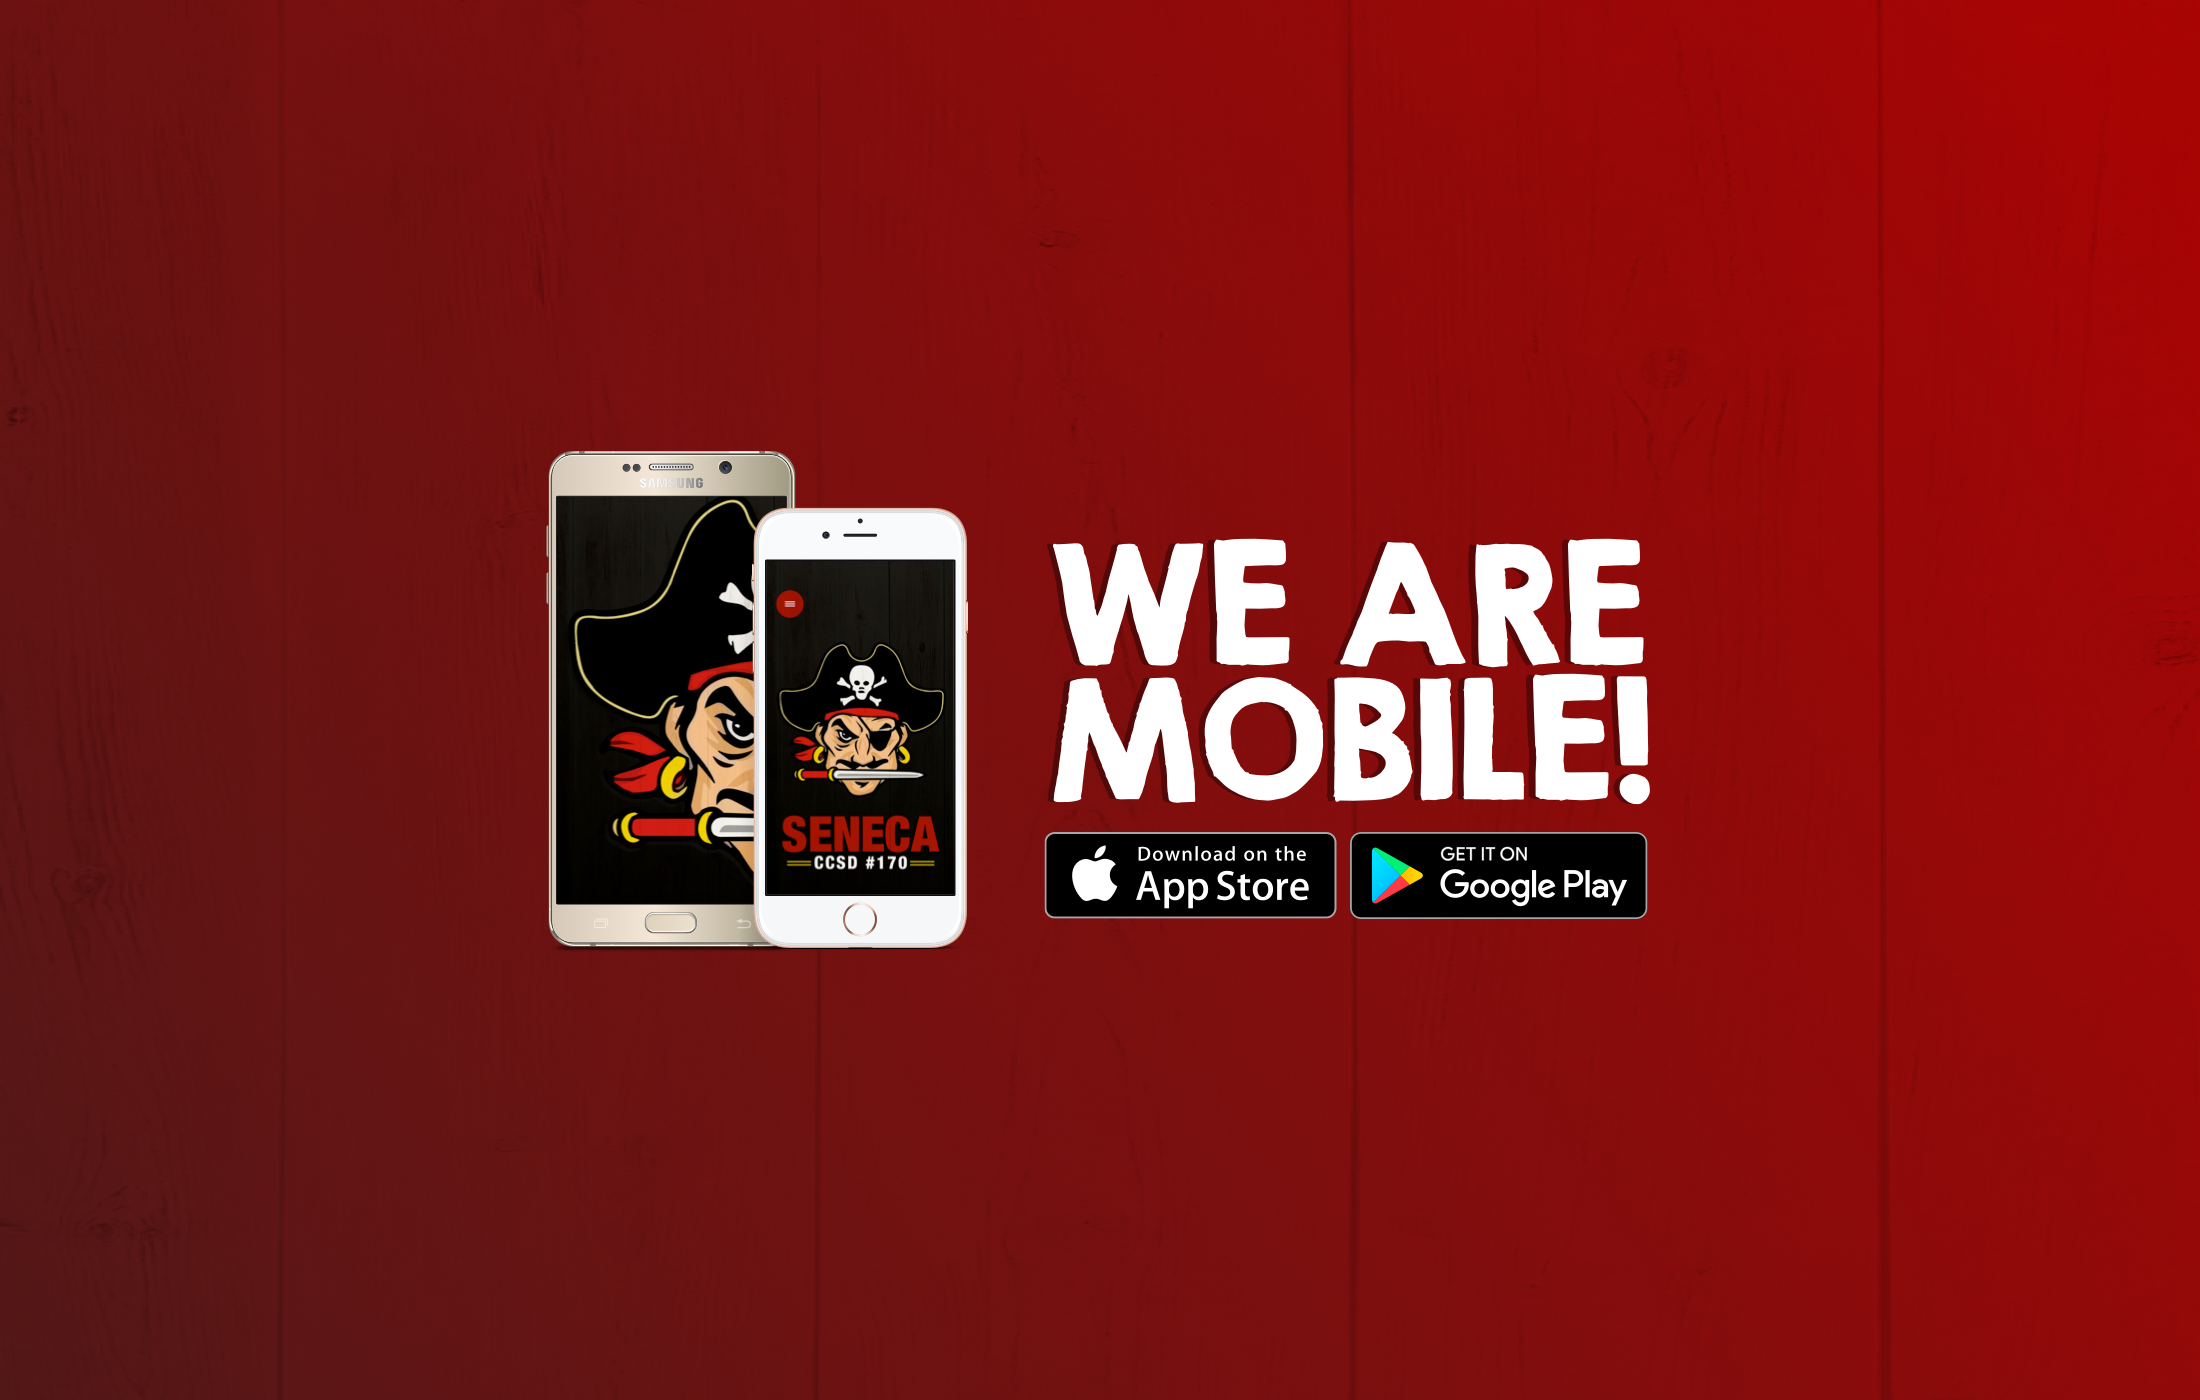 We Are Mobile - App Store & Google Play